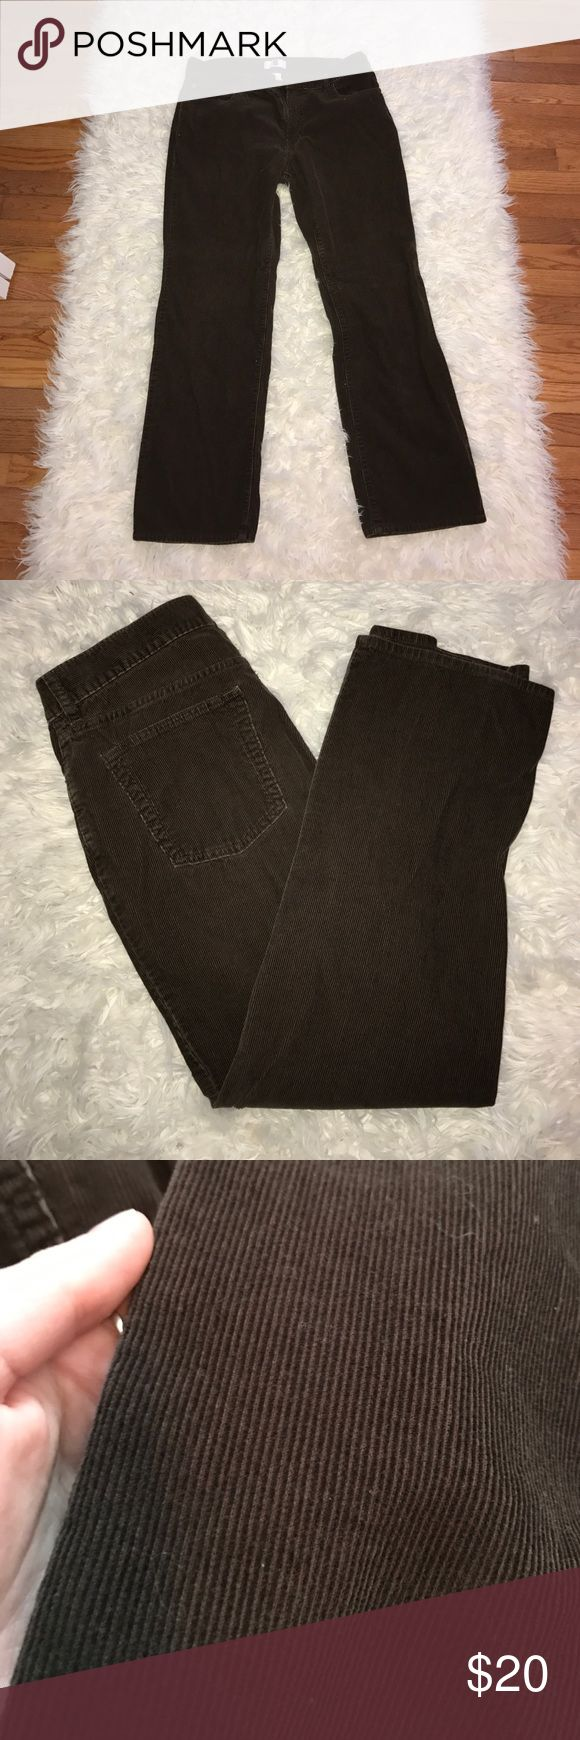 Dark brown men's corduroy pants from GAP Men's dark brown pants size 32 x 30 perfect condition. Feel pretty soft and comfy GAP Pants Corduroy